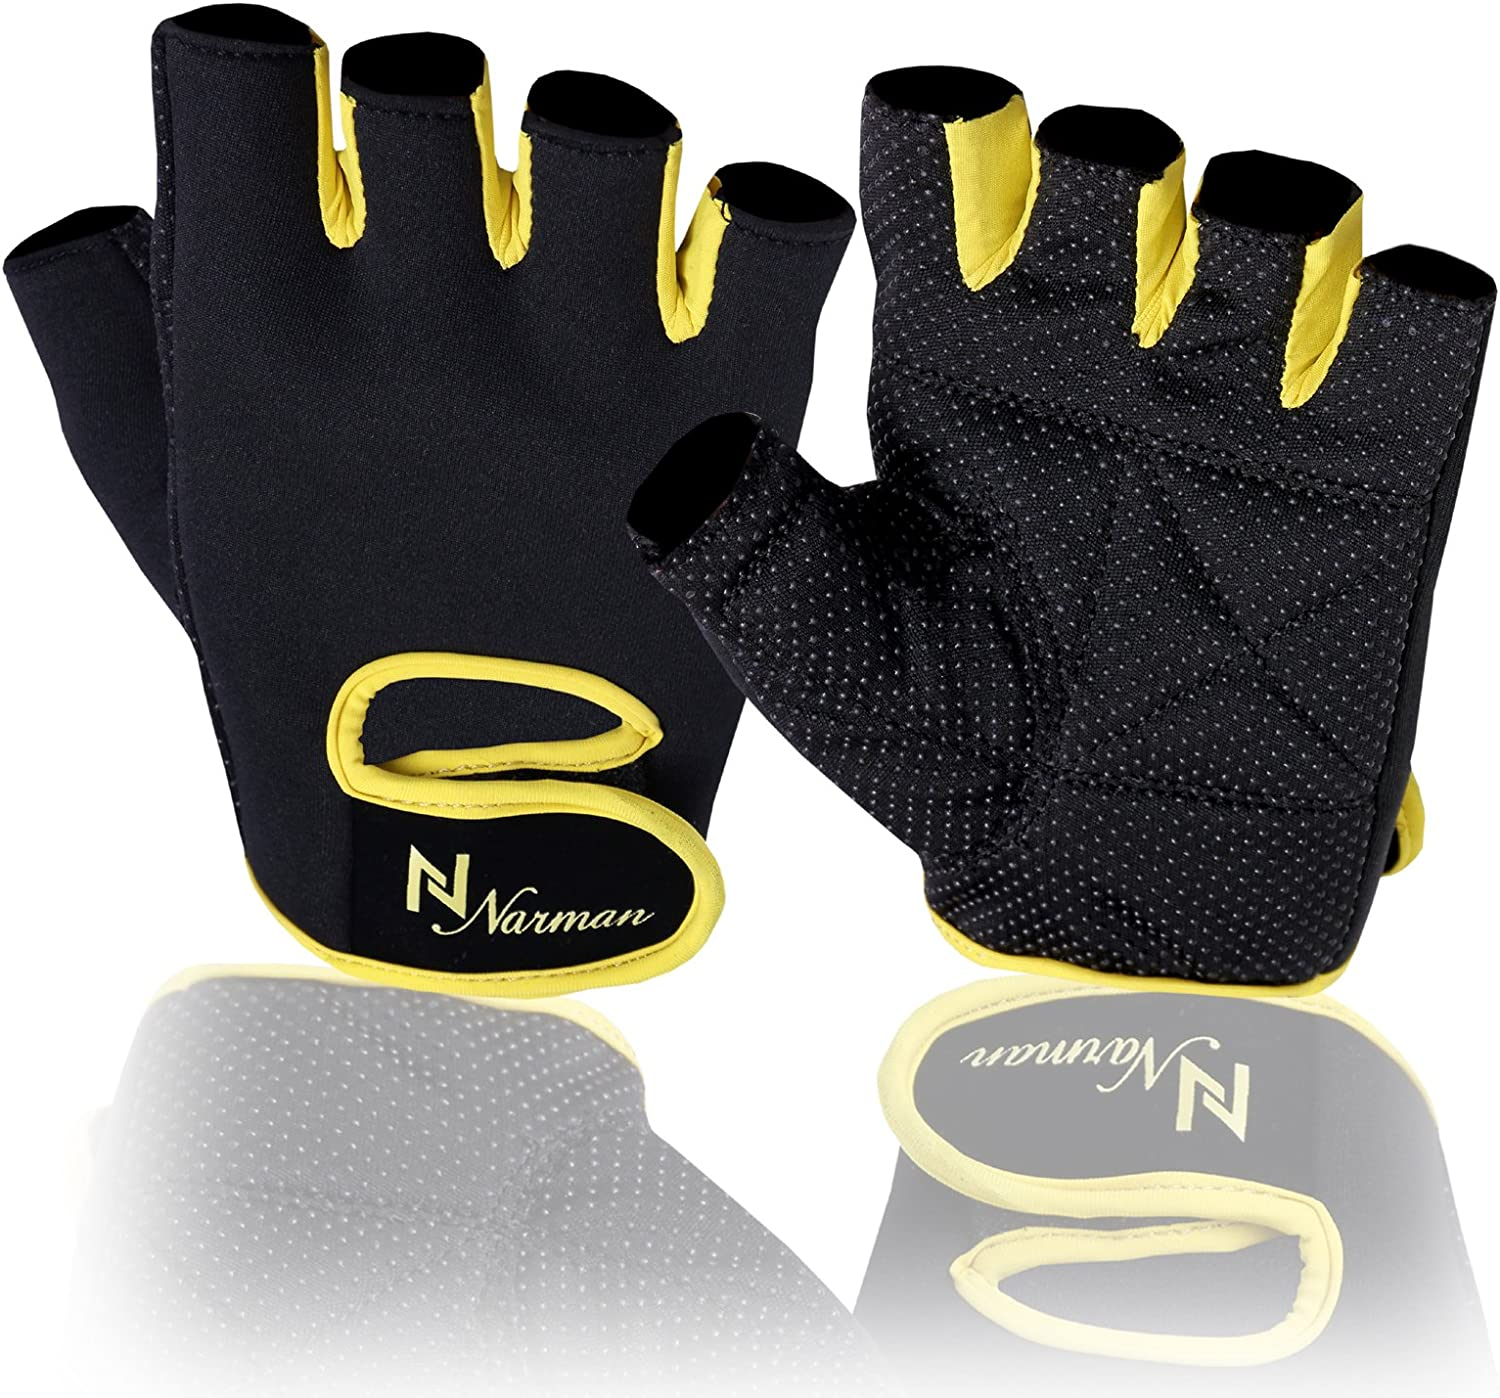 Gym Gloves Fitness Body Building Weight Lifting Training Long Straps Neoprene